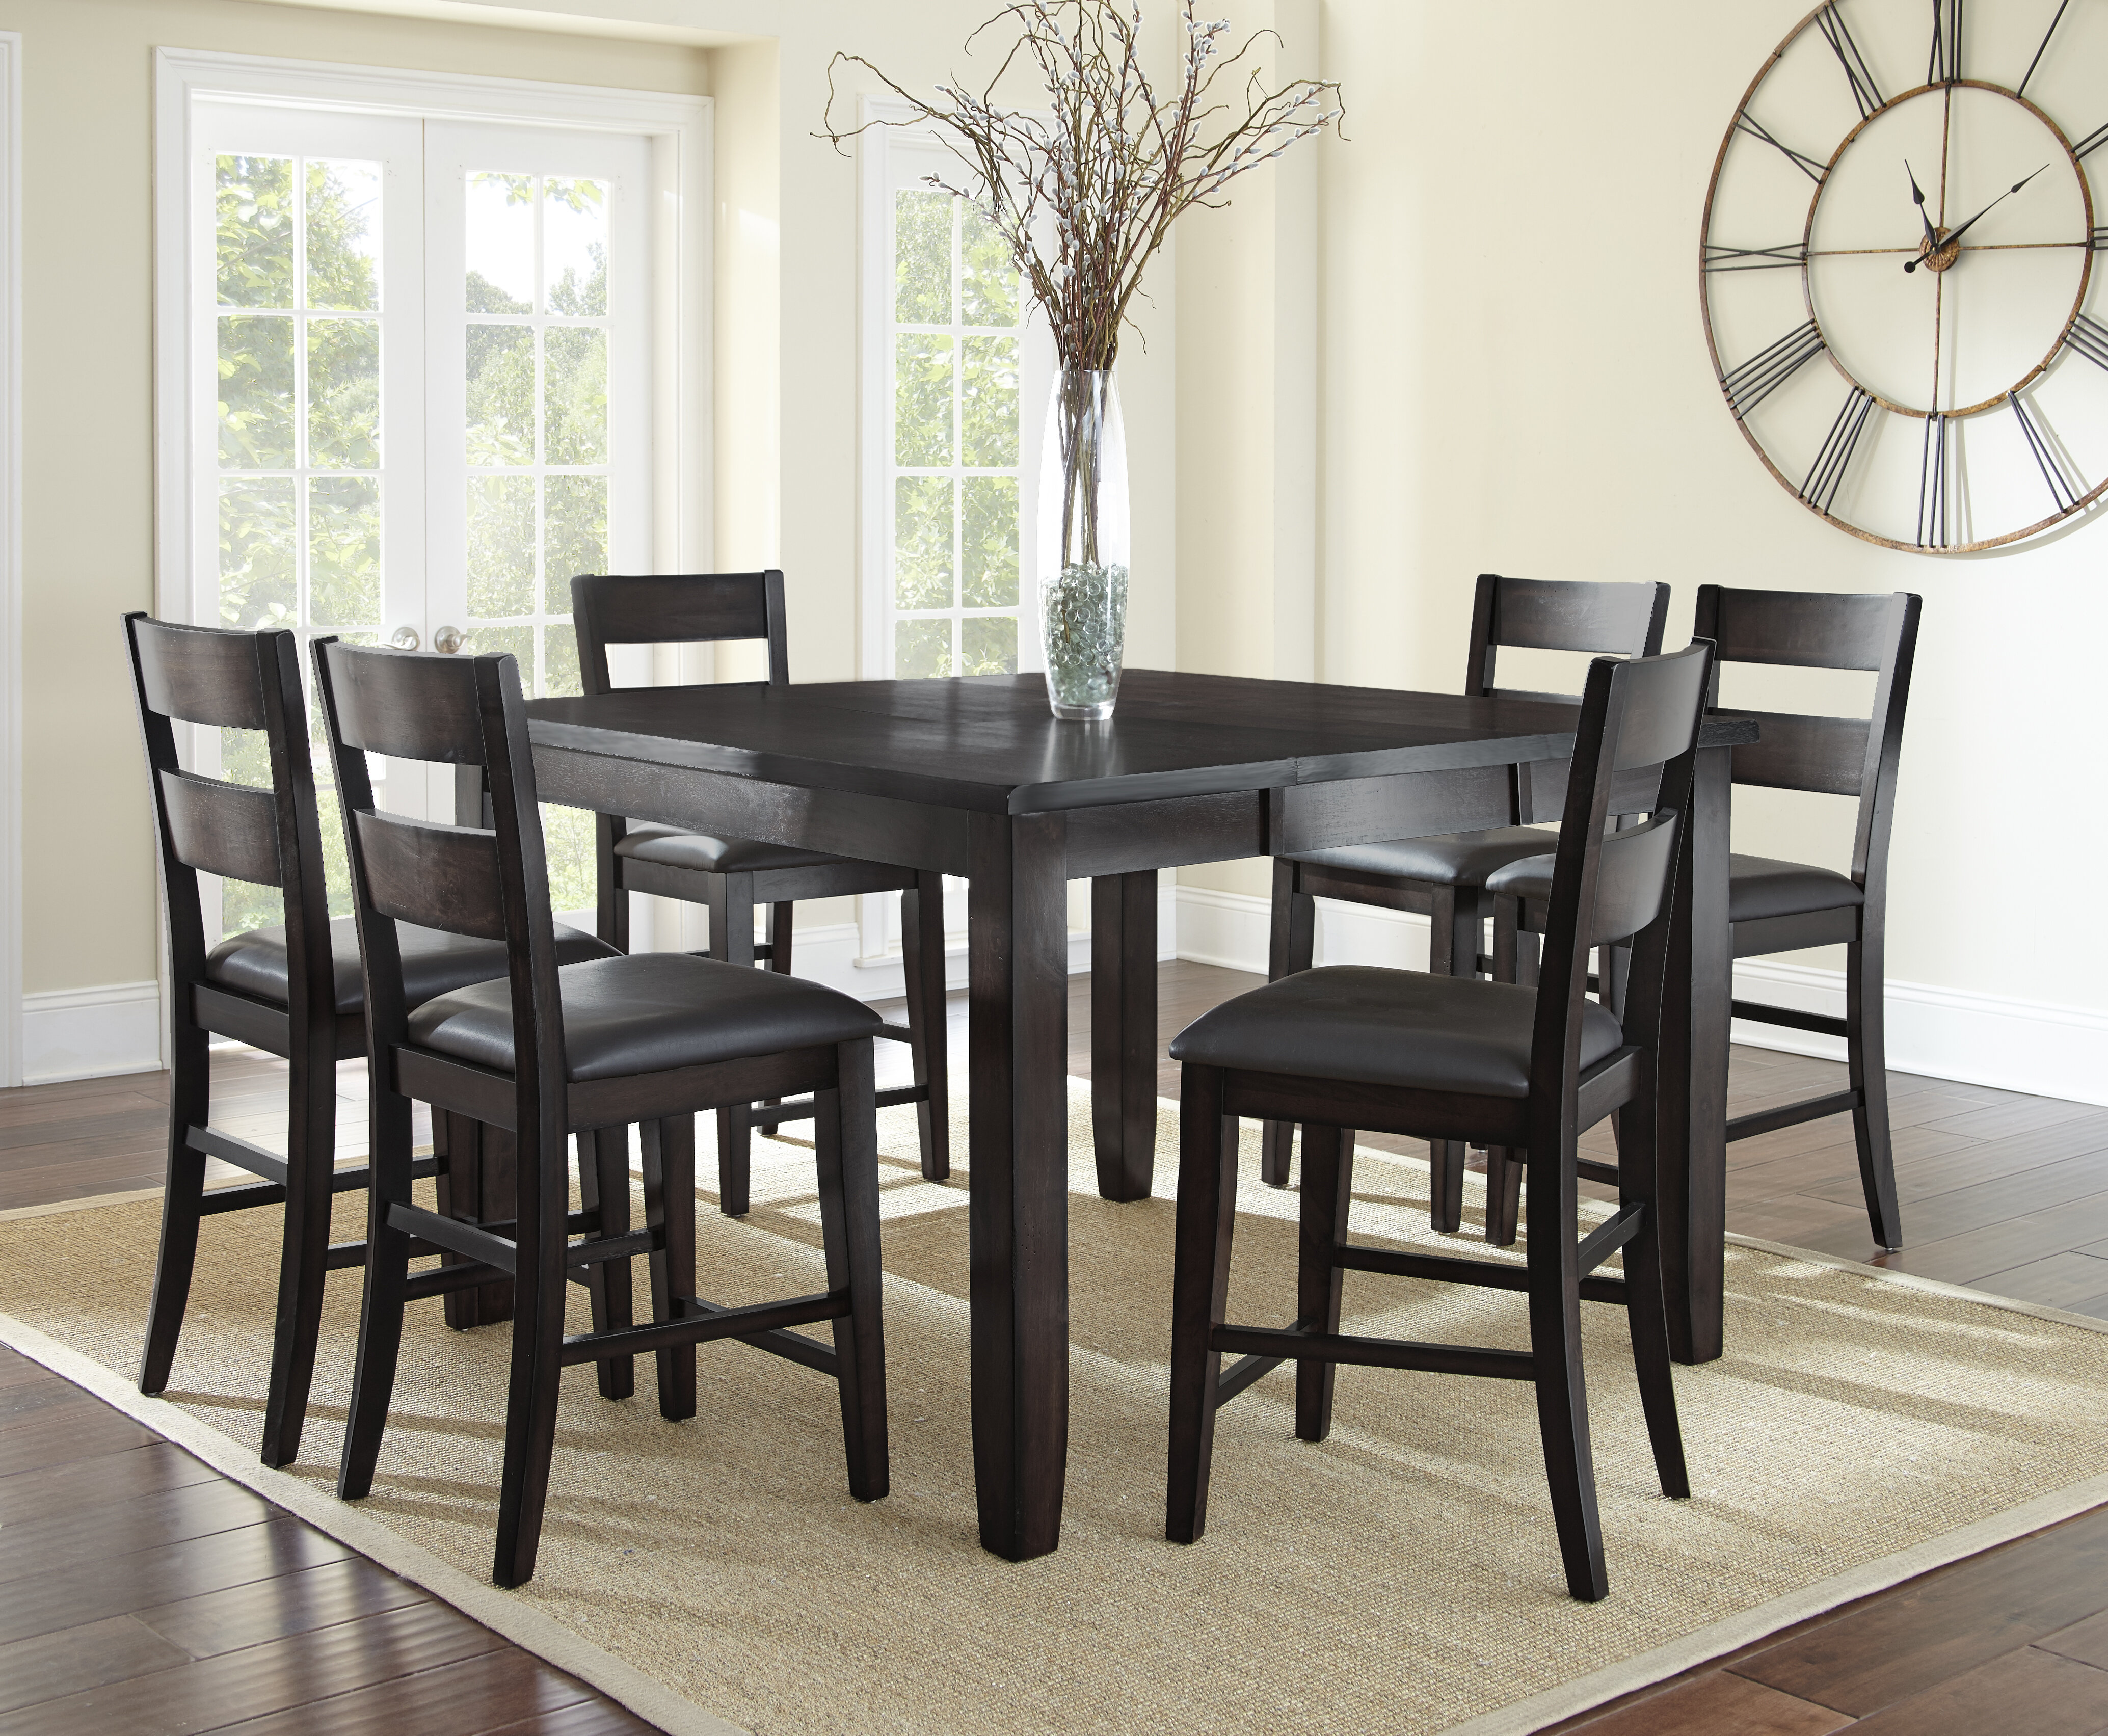 Alcott Hill Wynwood 7 Piece Counter Height Solid Wood Dining Set